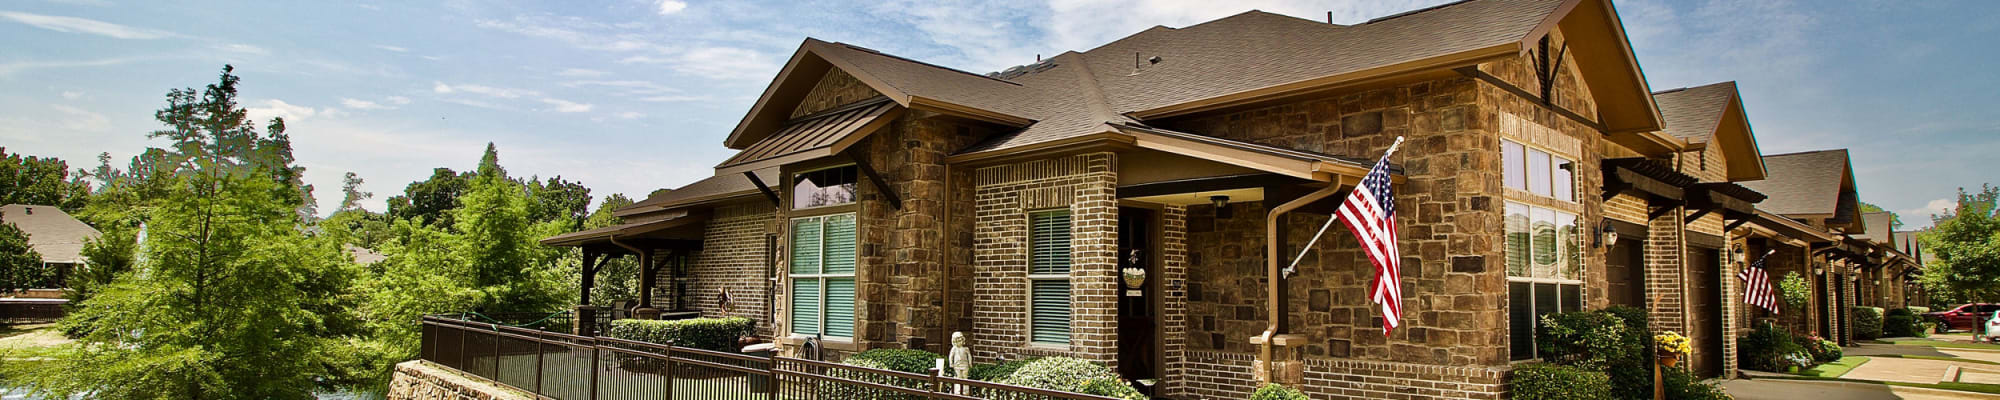 Planning & resources offered by Watercrest at Mansfield in Mansfield, Texas